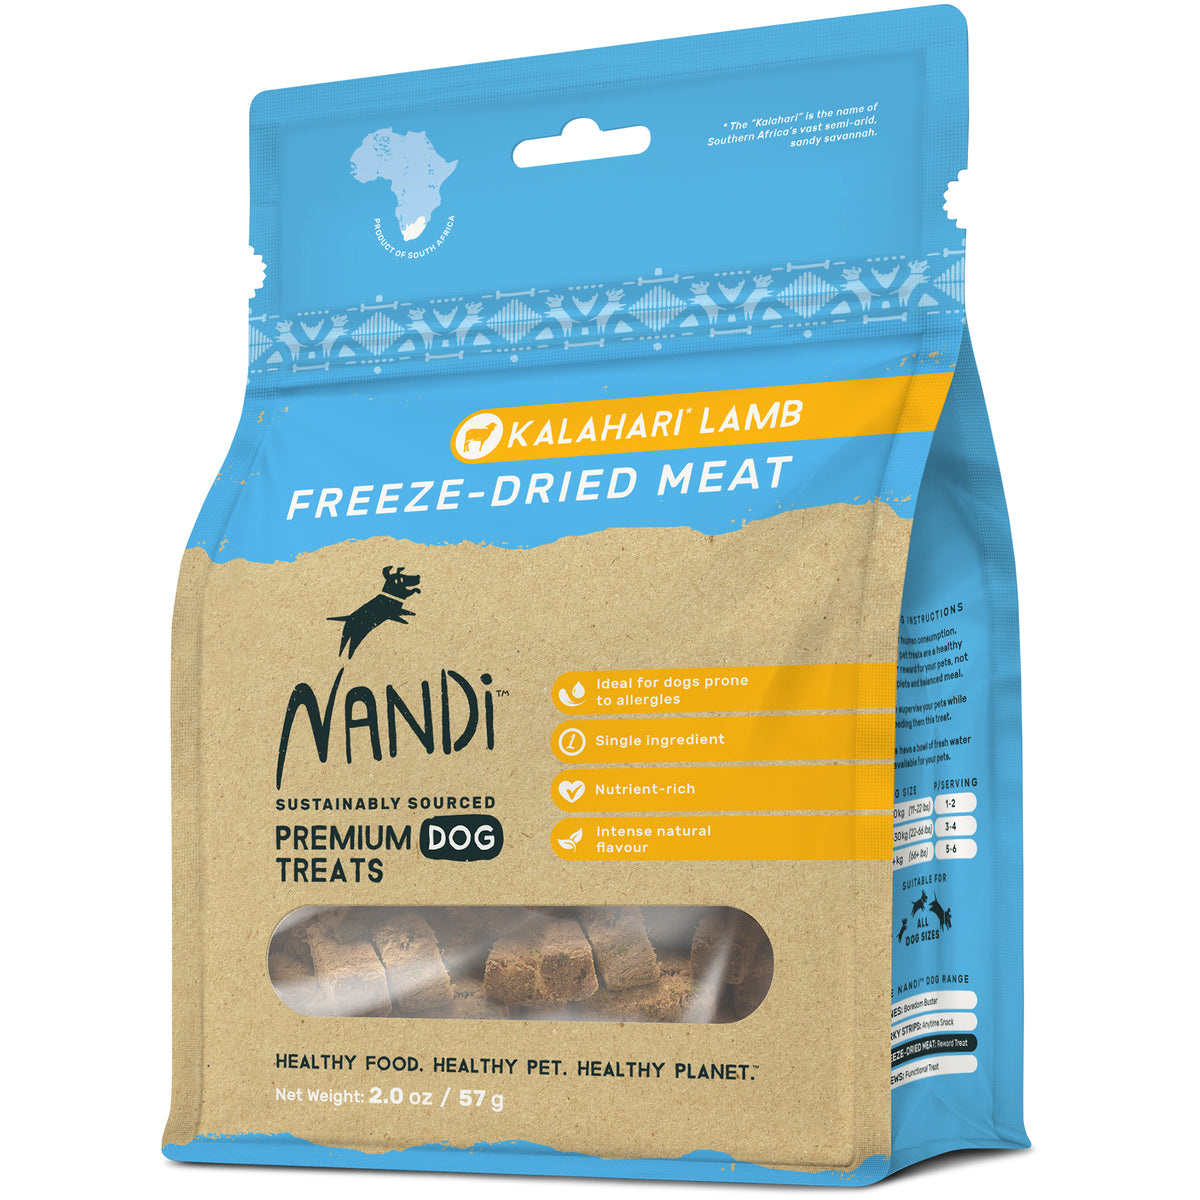 Nandi Freeze Dried Meat Pet Treats -Kalahari Lamb  57g